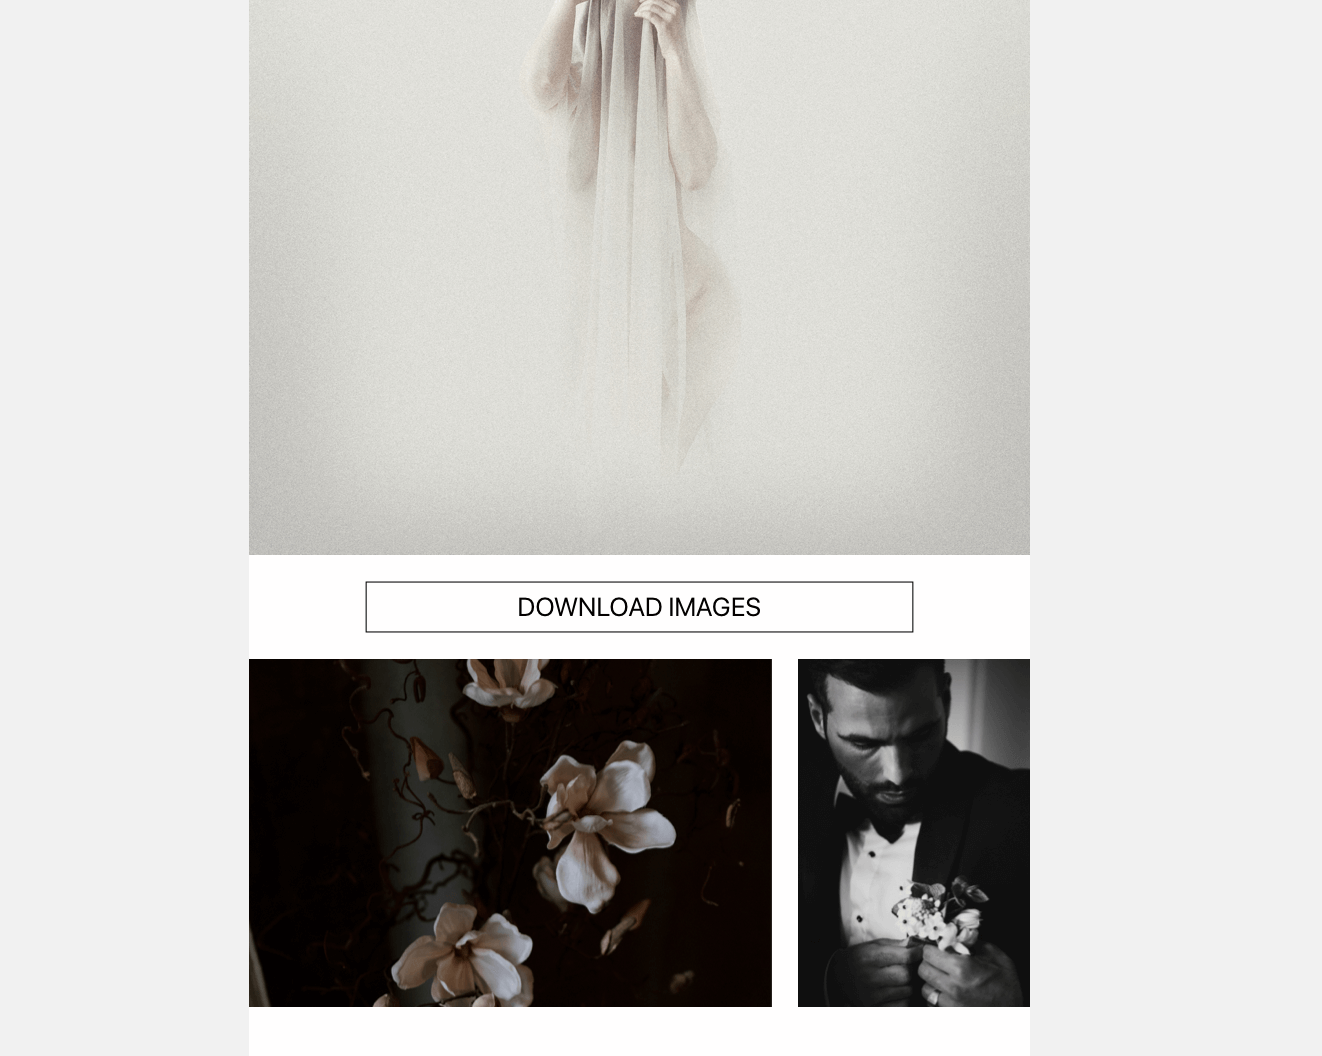 Download image option Image collage Blog Posts -Narrative, Flothemes Review, Muse & Mirror photography